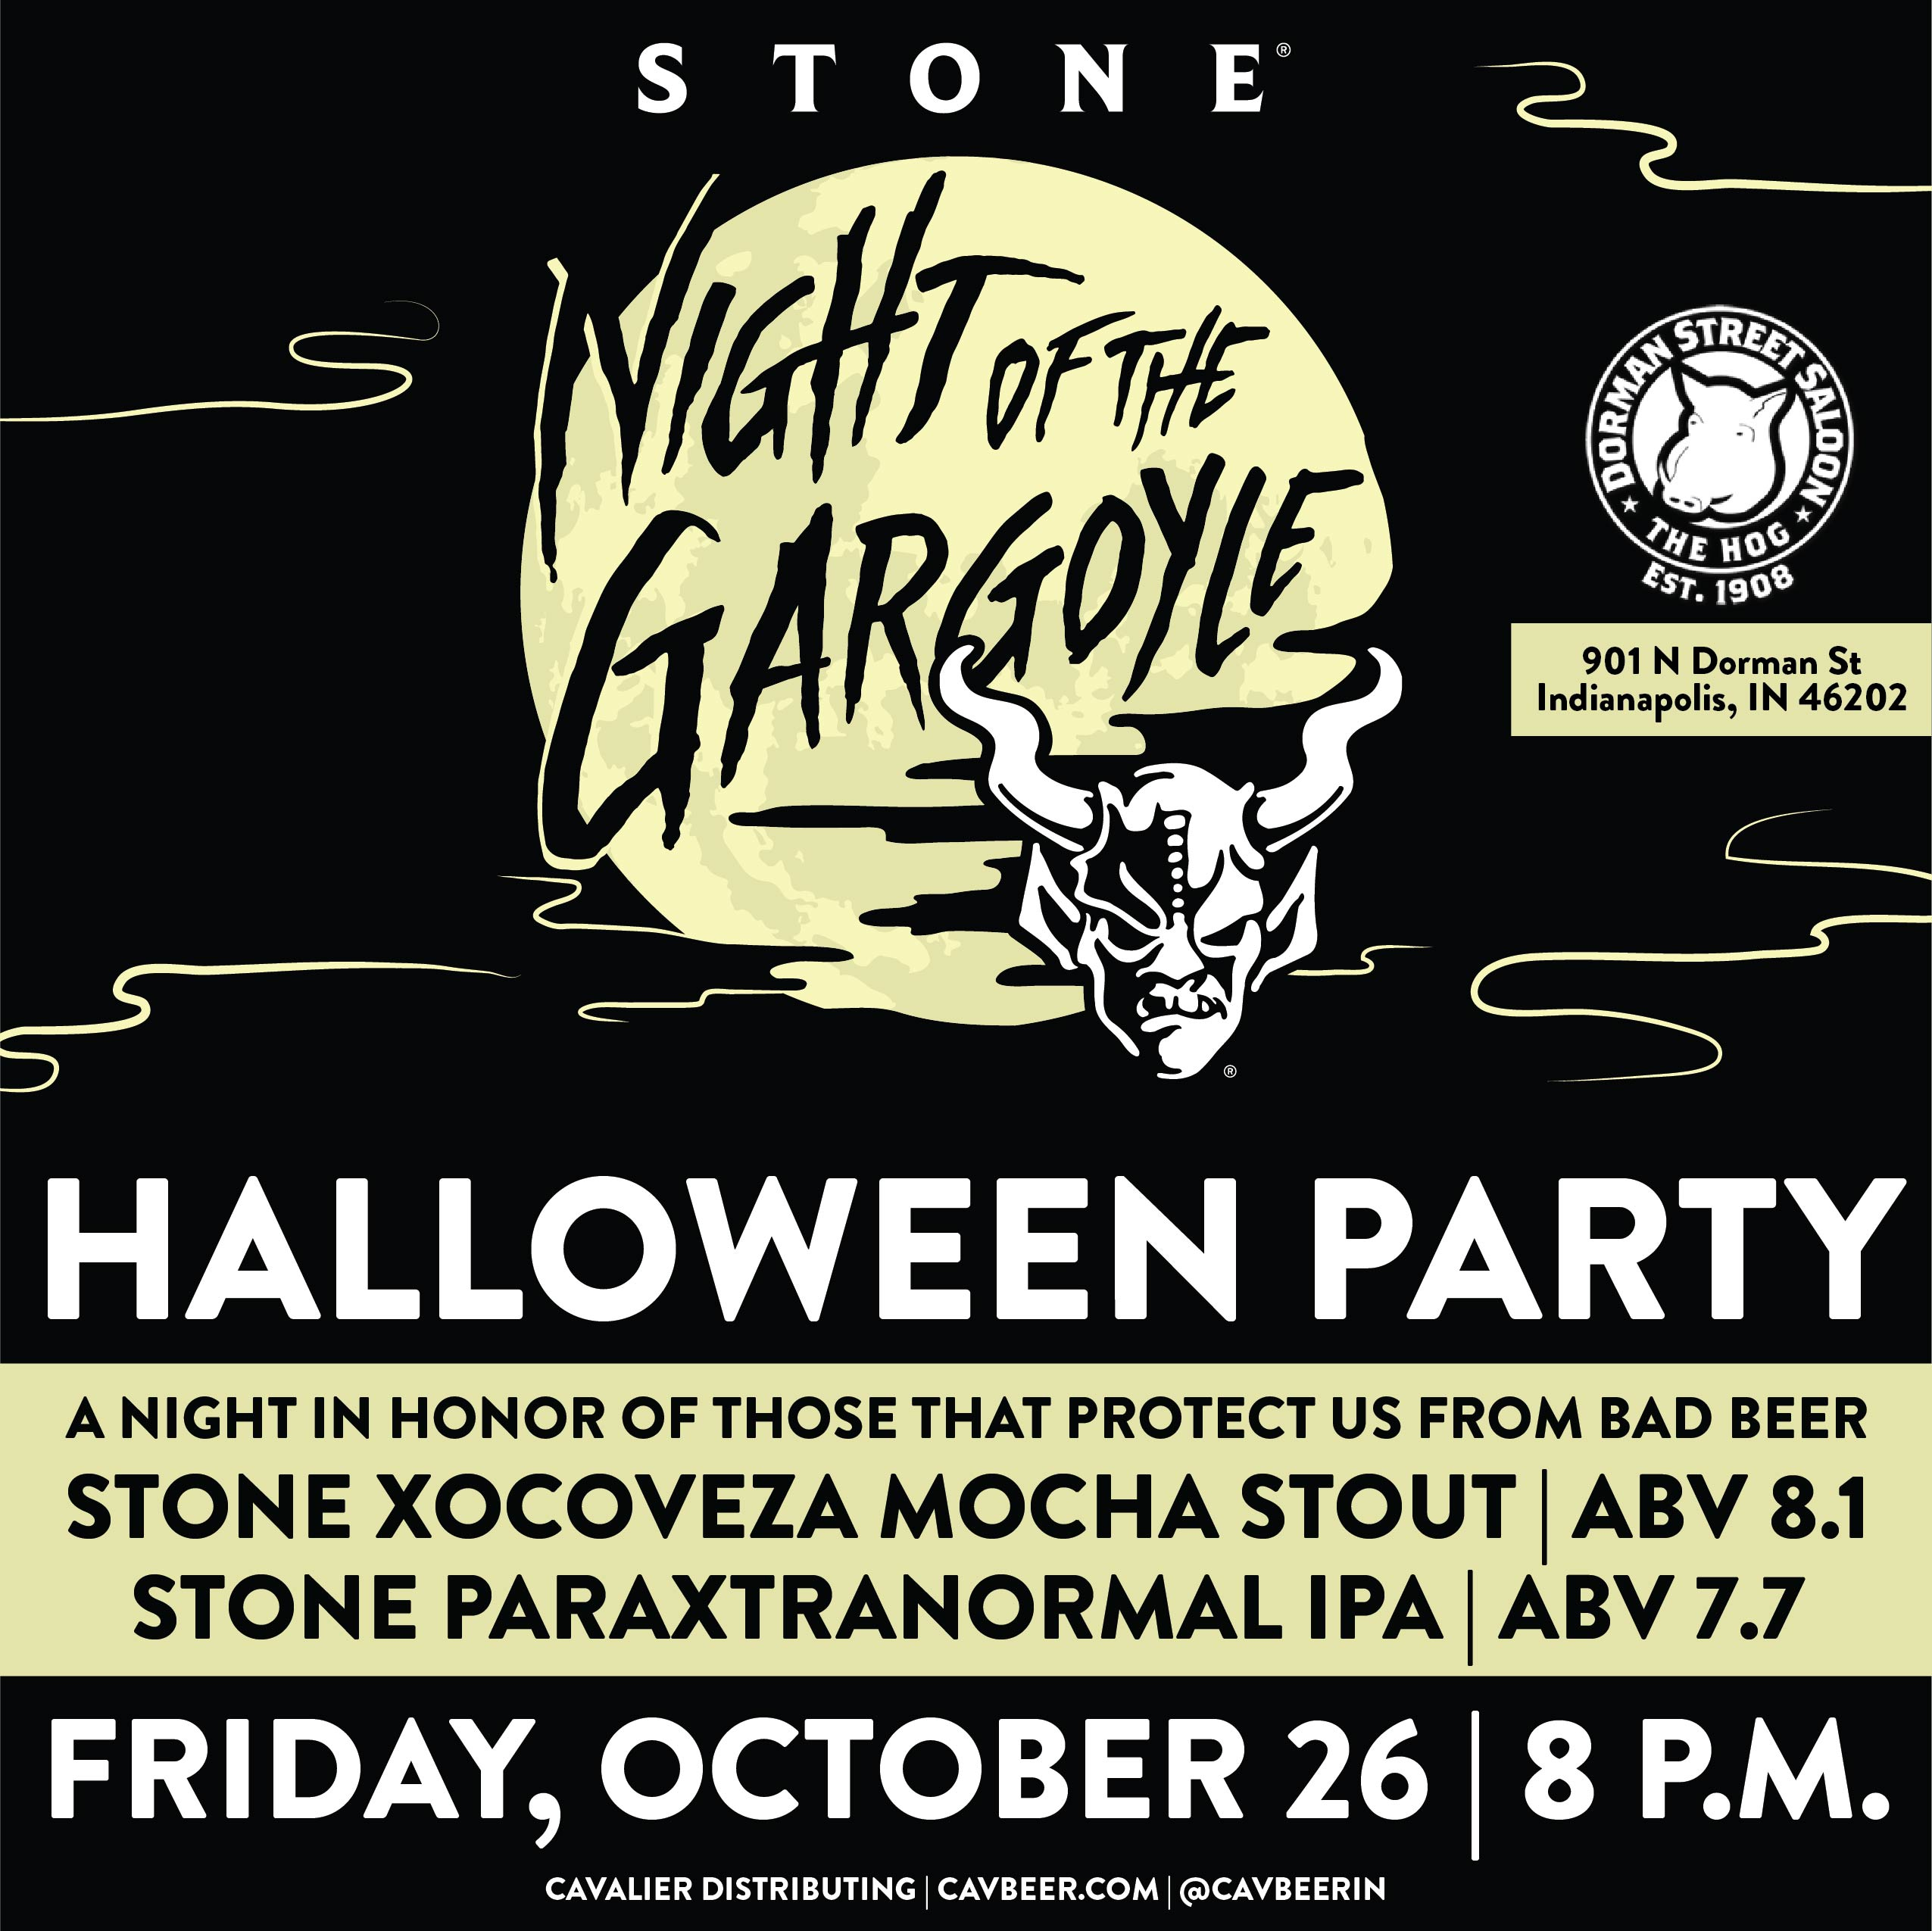 Stone Brewing's Halloween Party at Dorman Street Saloon